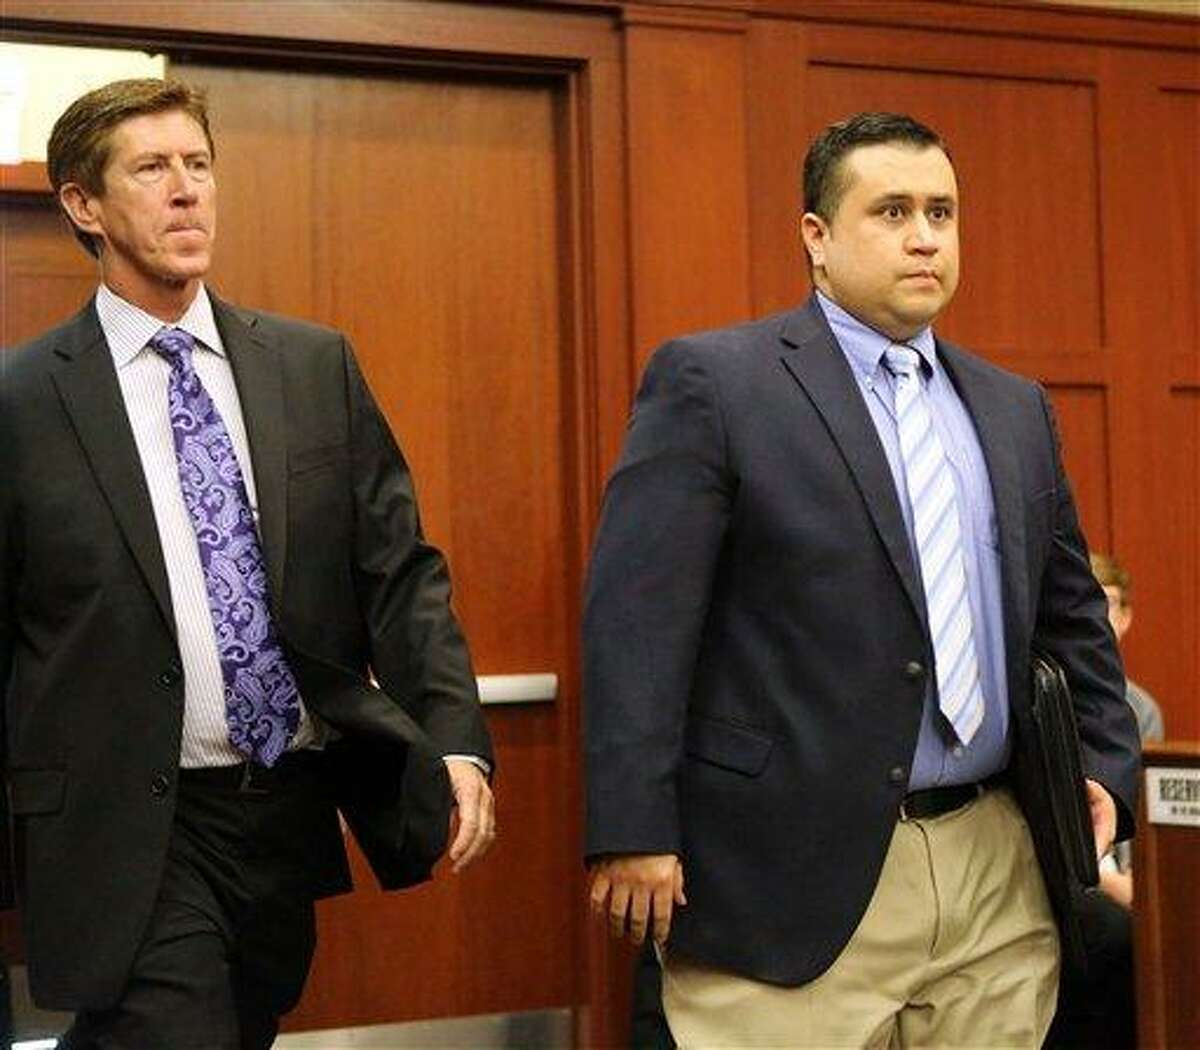 George Zimmerman, right, arrives with his lead counsel, Mark O'Mara, for a hearing in Seminole circuit court, in Sanford, Fla., Tuesday, Feb. 5, 2013. Zimmerman's attorneys presented a motion Tuesday asking Judge Debra Nelson to push the trial from mid-June back to November, but she denied the defense request to delay the trial. Zimmerman is accused of shooting Florida teenager Trayvon Martin last year. He has pleaded not guilty to second-degree murder charges. (AP Photo/Orlando Sentinel, Joe Burbank, Pool)